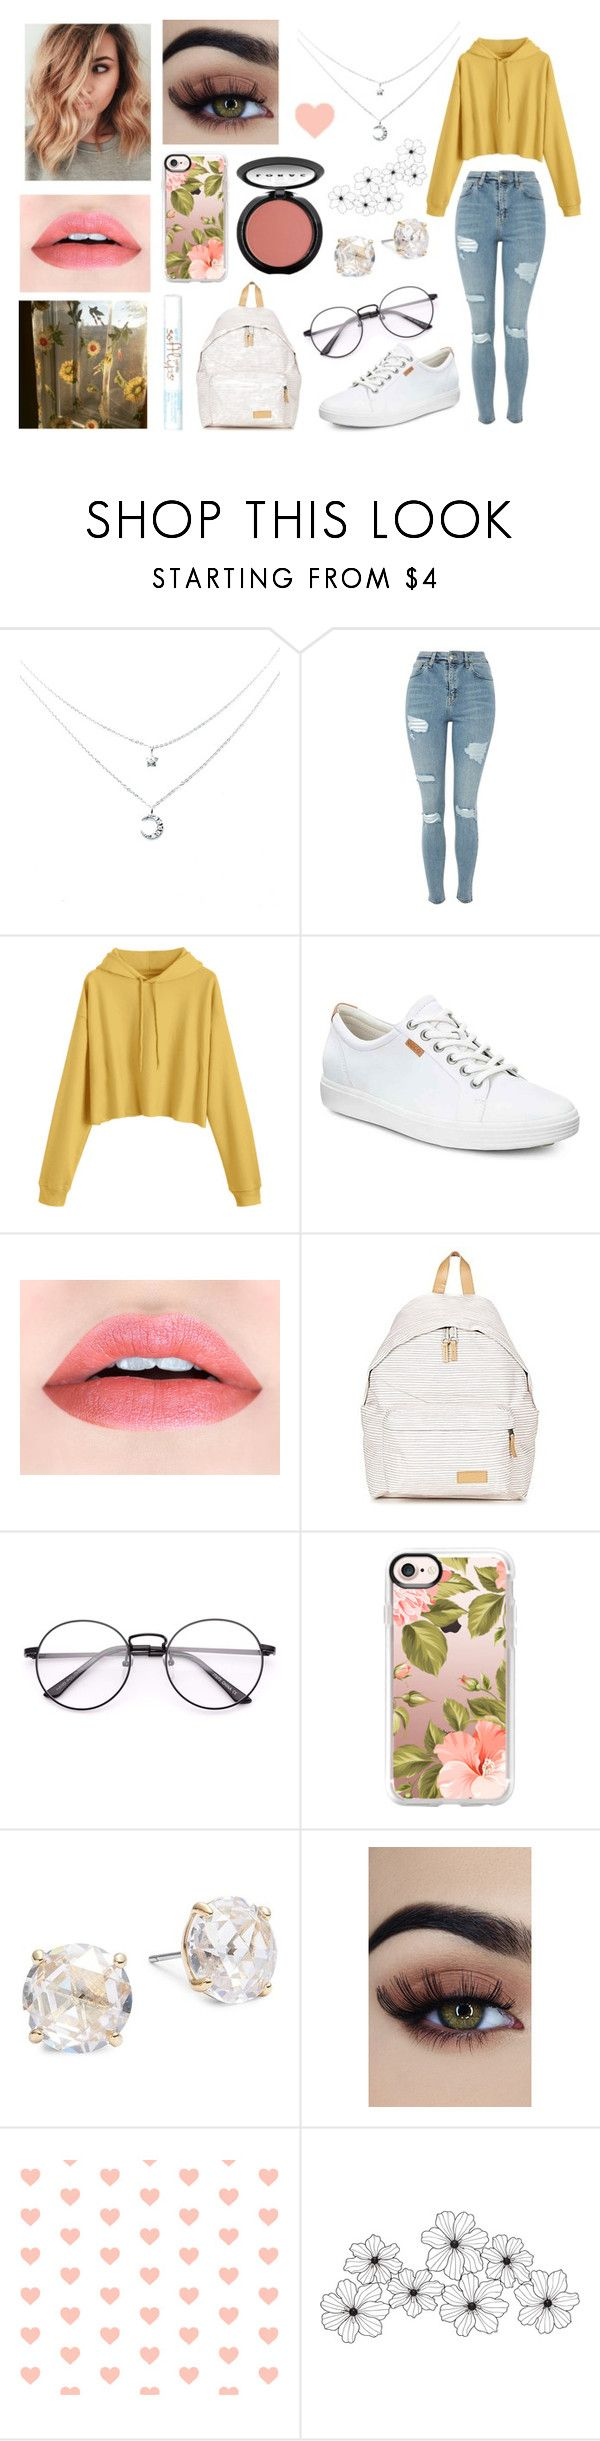 """Untitled #9"" by jellymcfarland on Polyvore featuring Topshop, ECCO, LORAC, Eastpak, Casetify, Kate Spade and WALL"